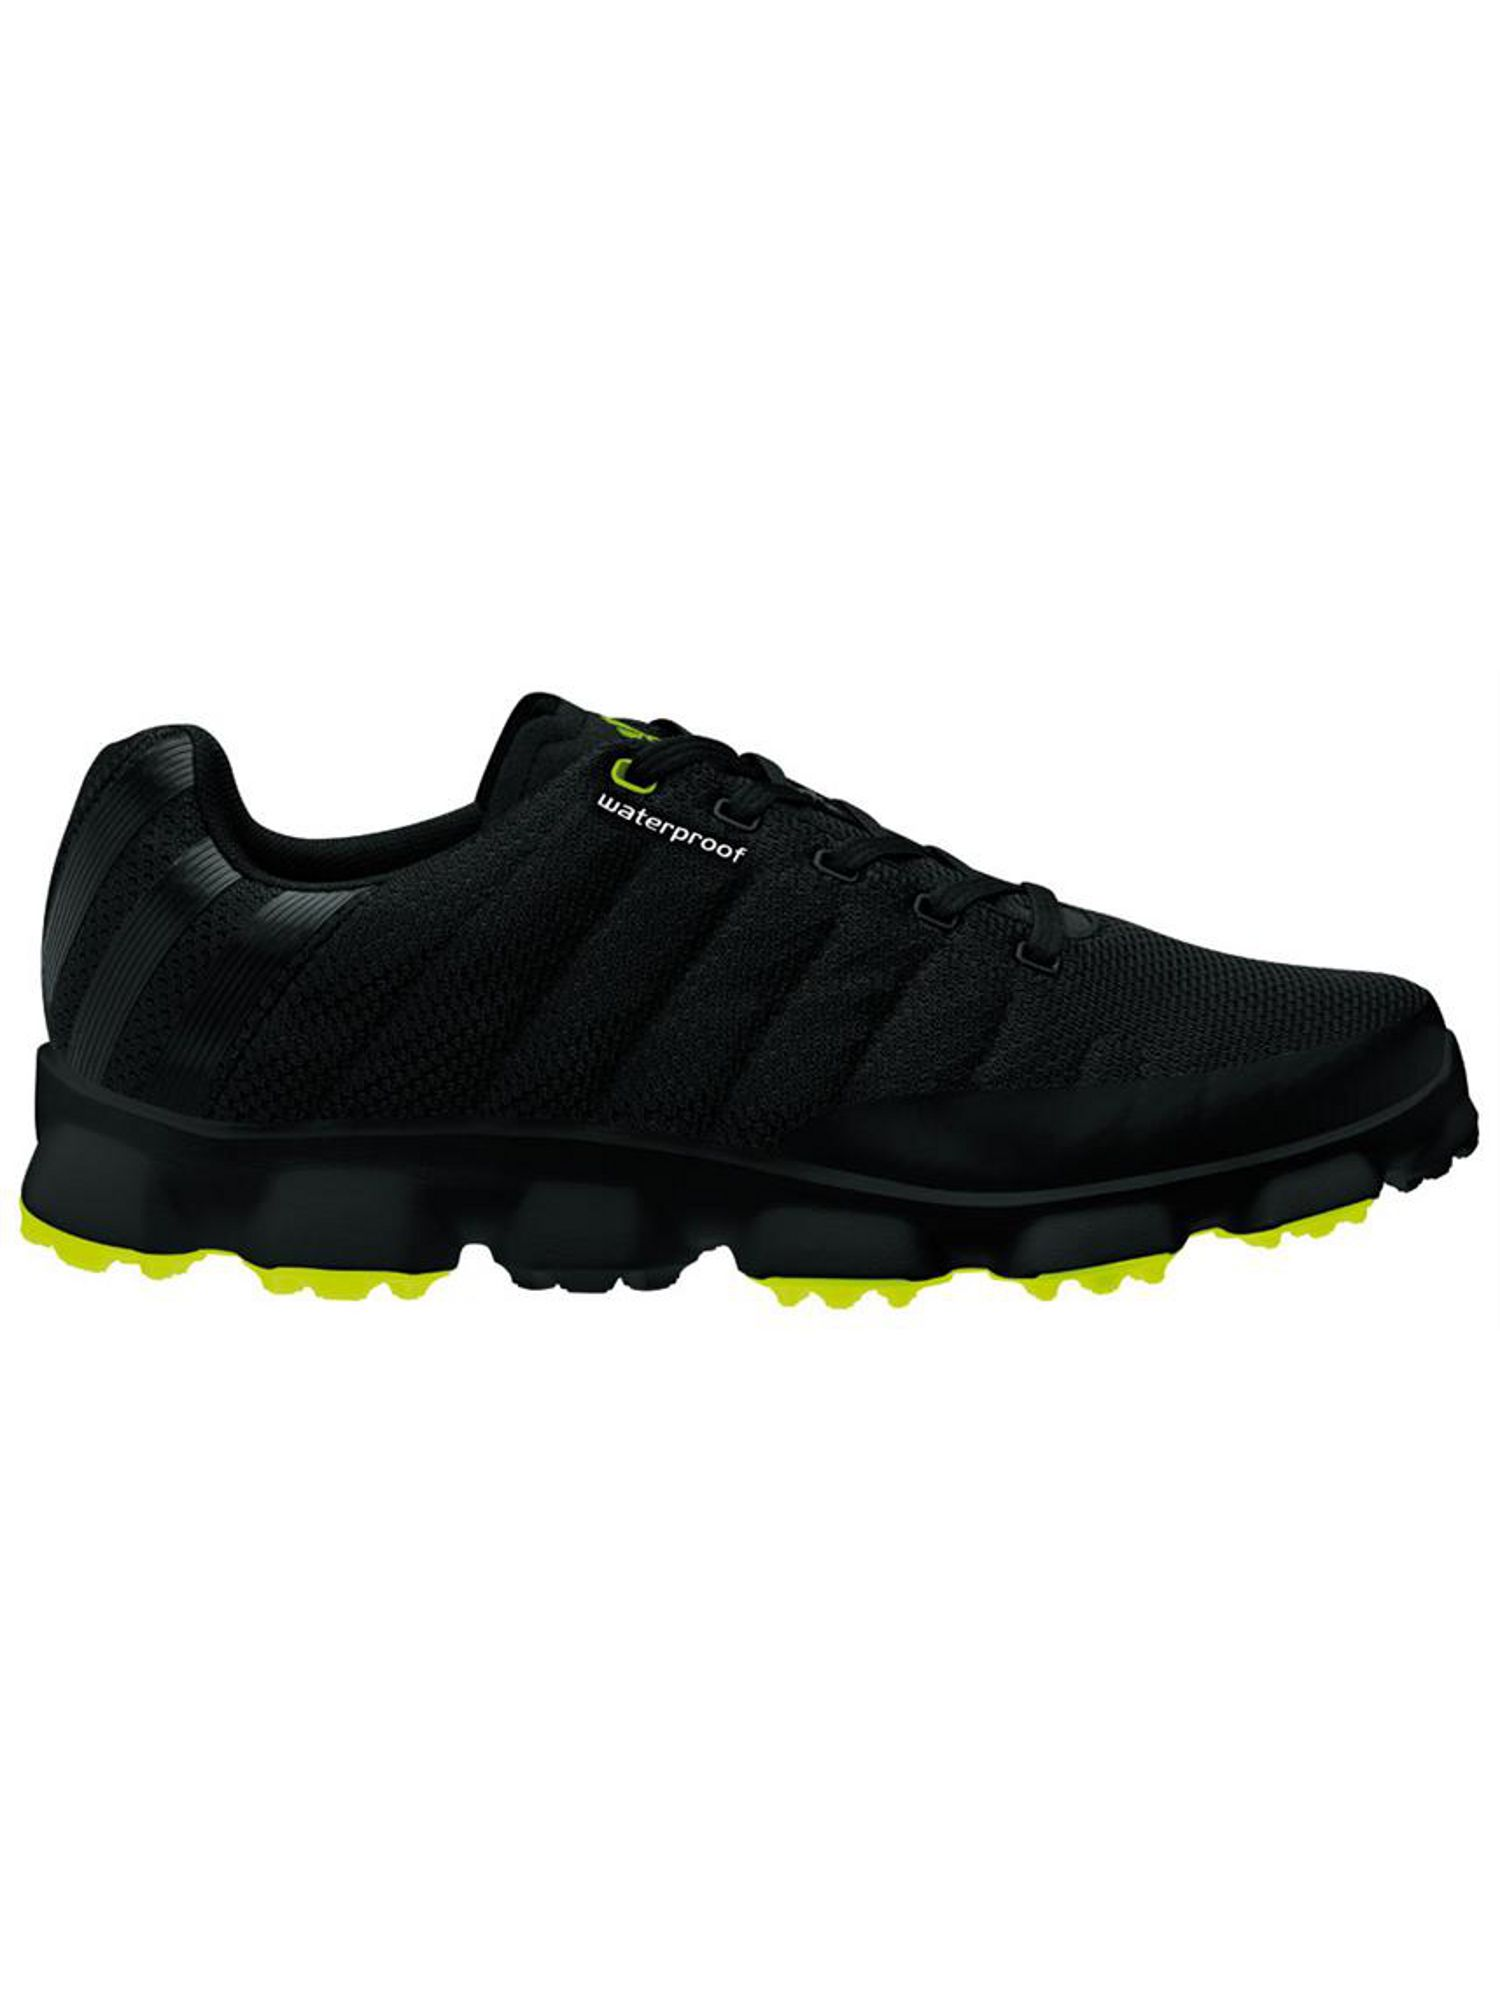 Cross flex golf shoes